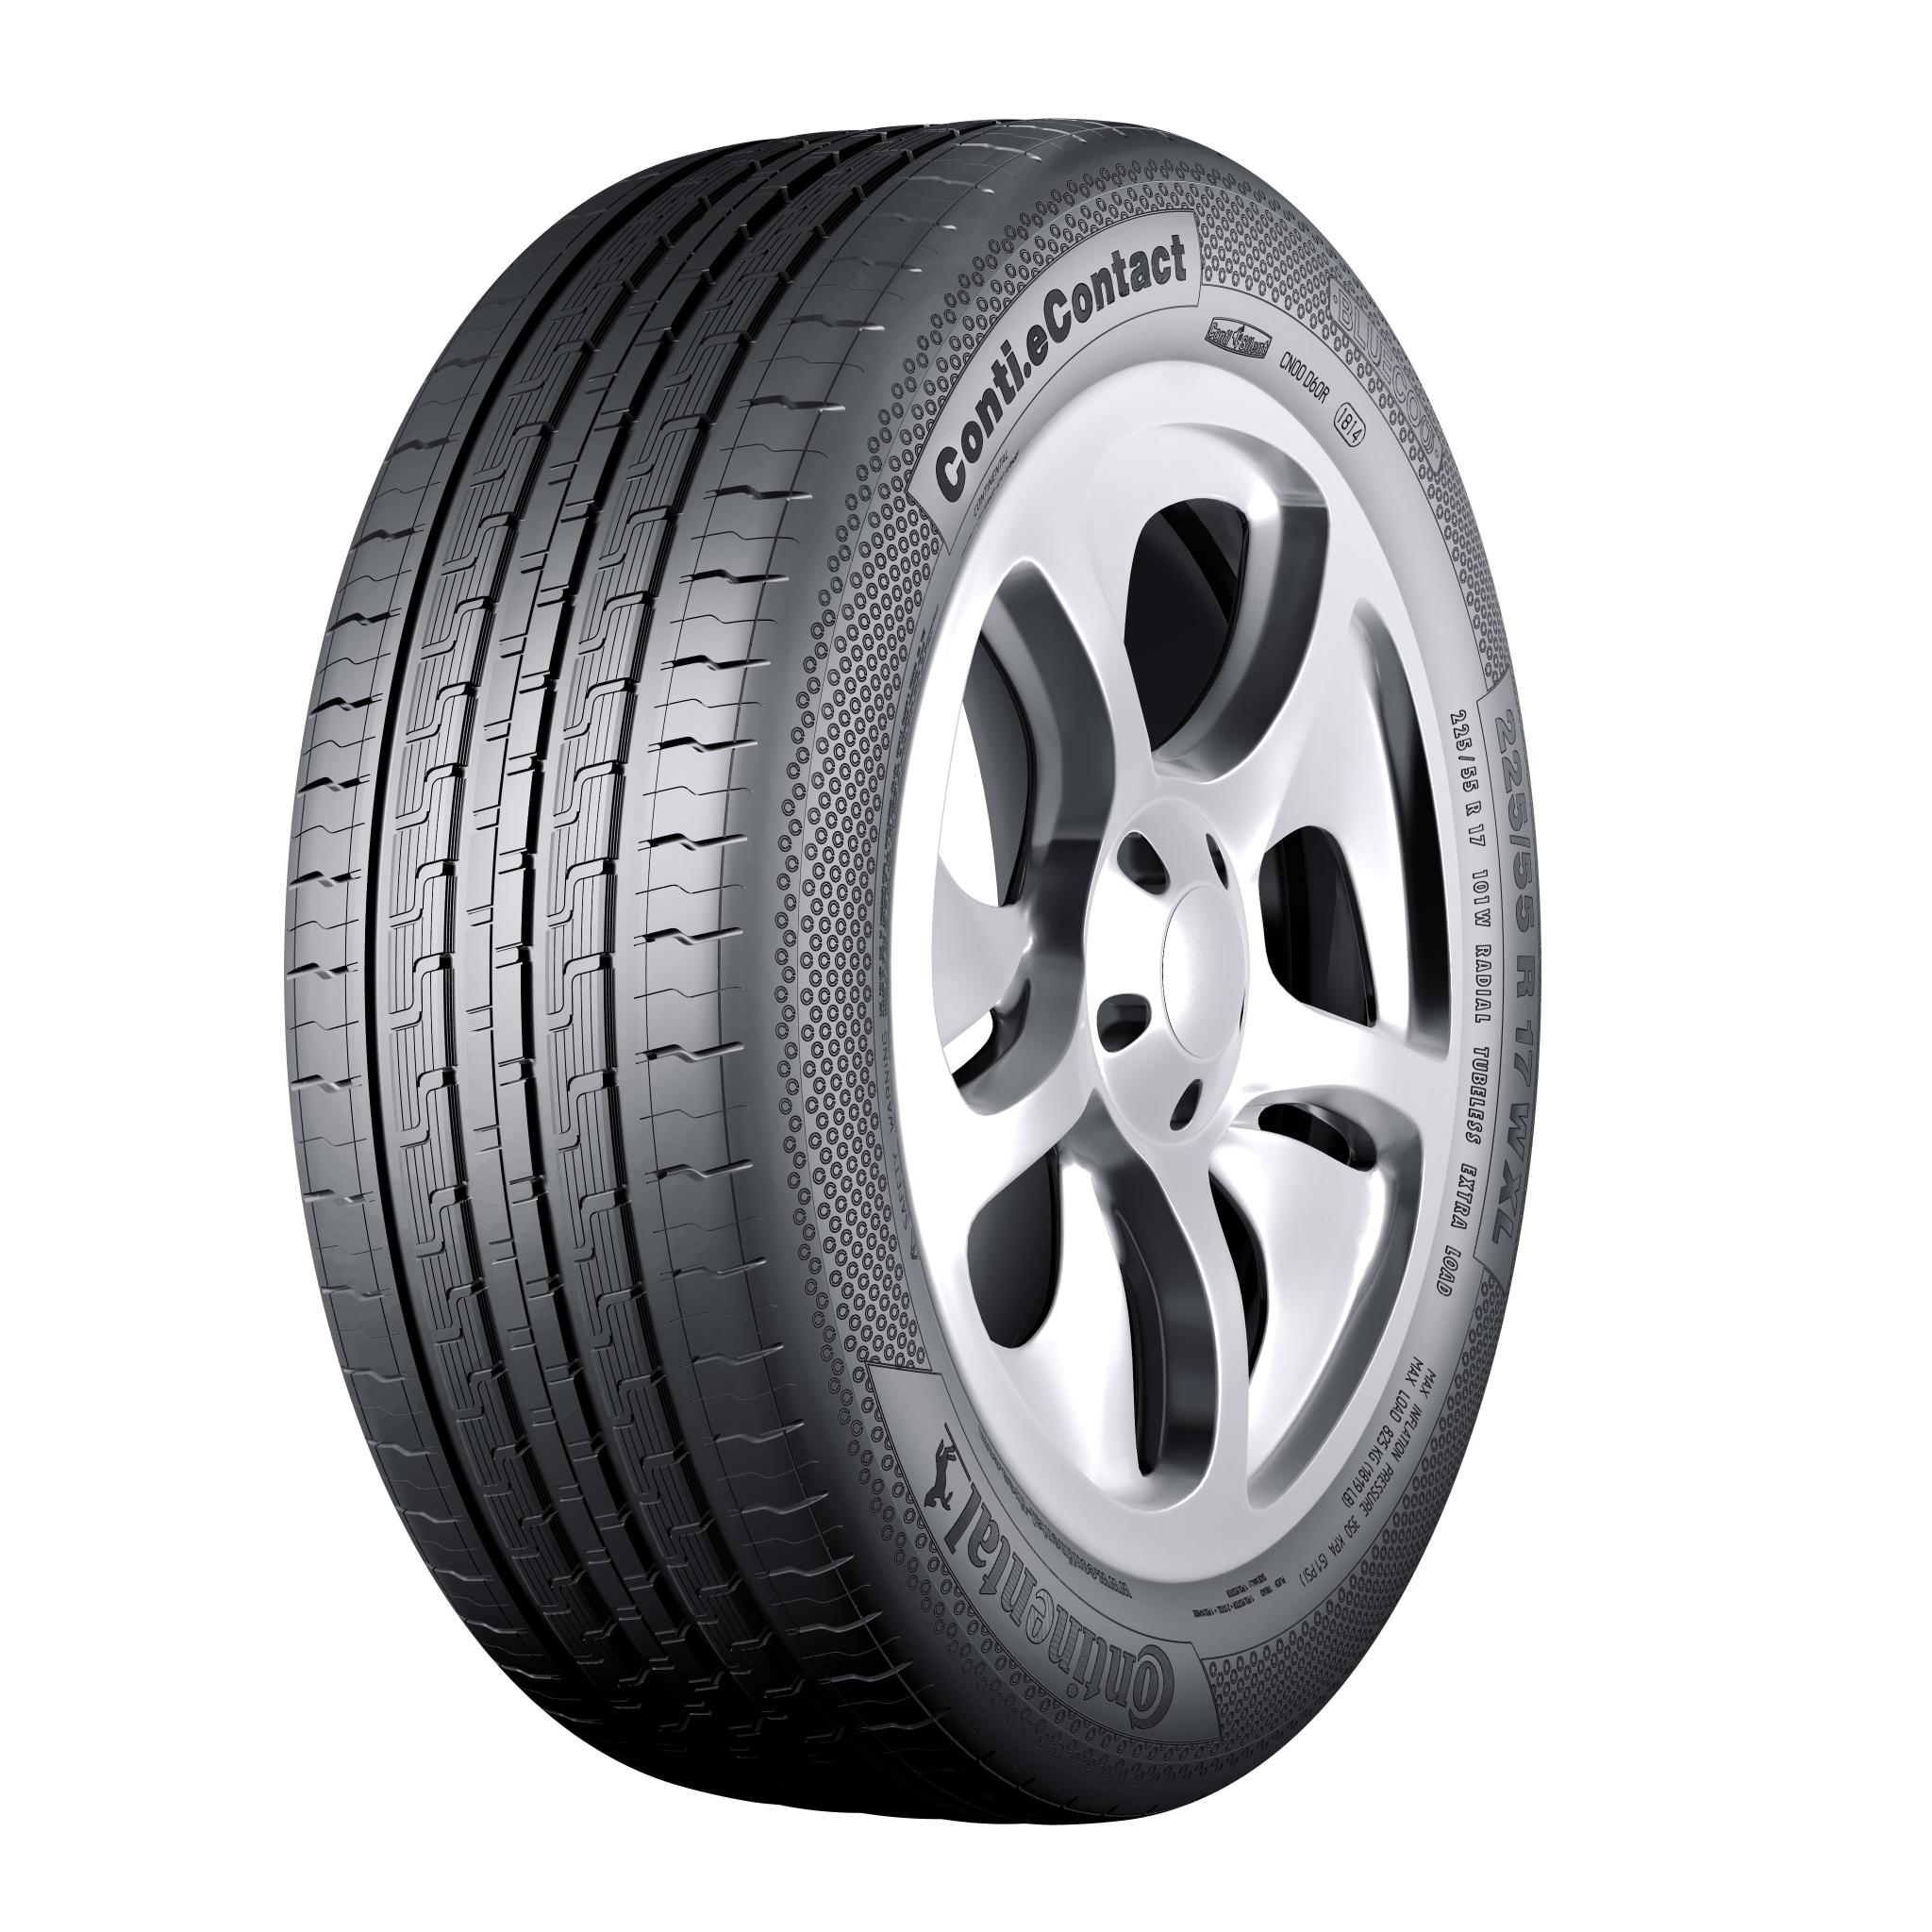 Econtact Tire